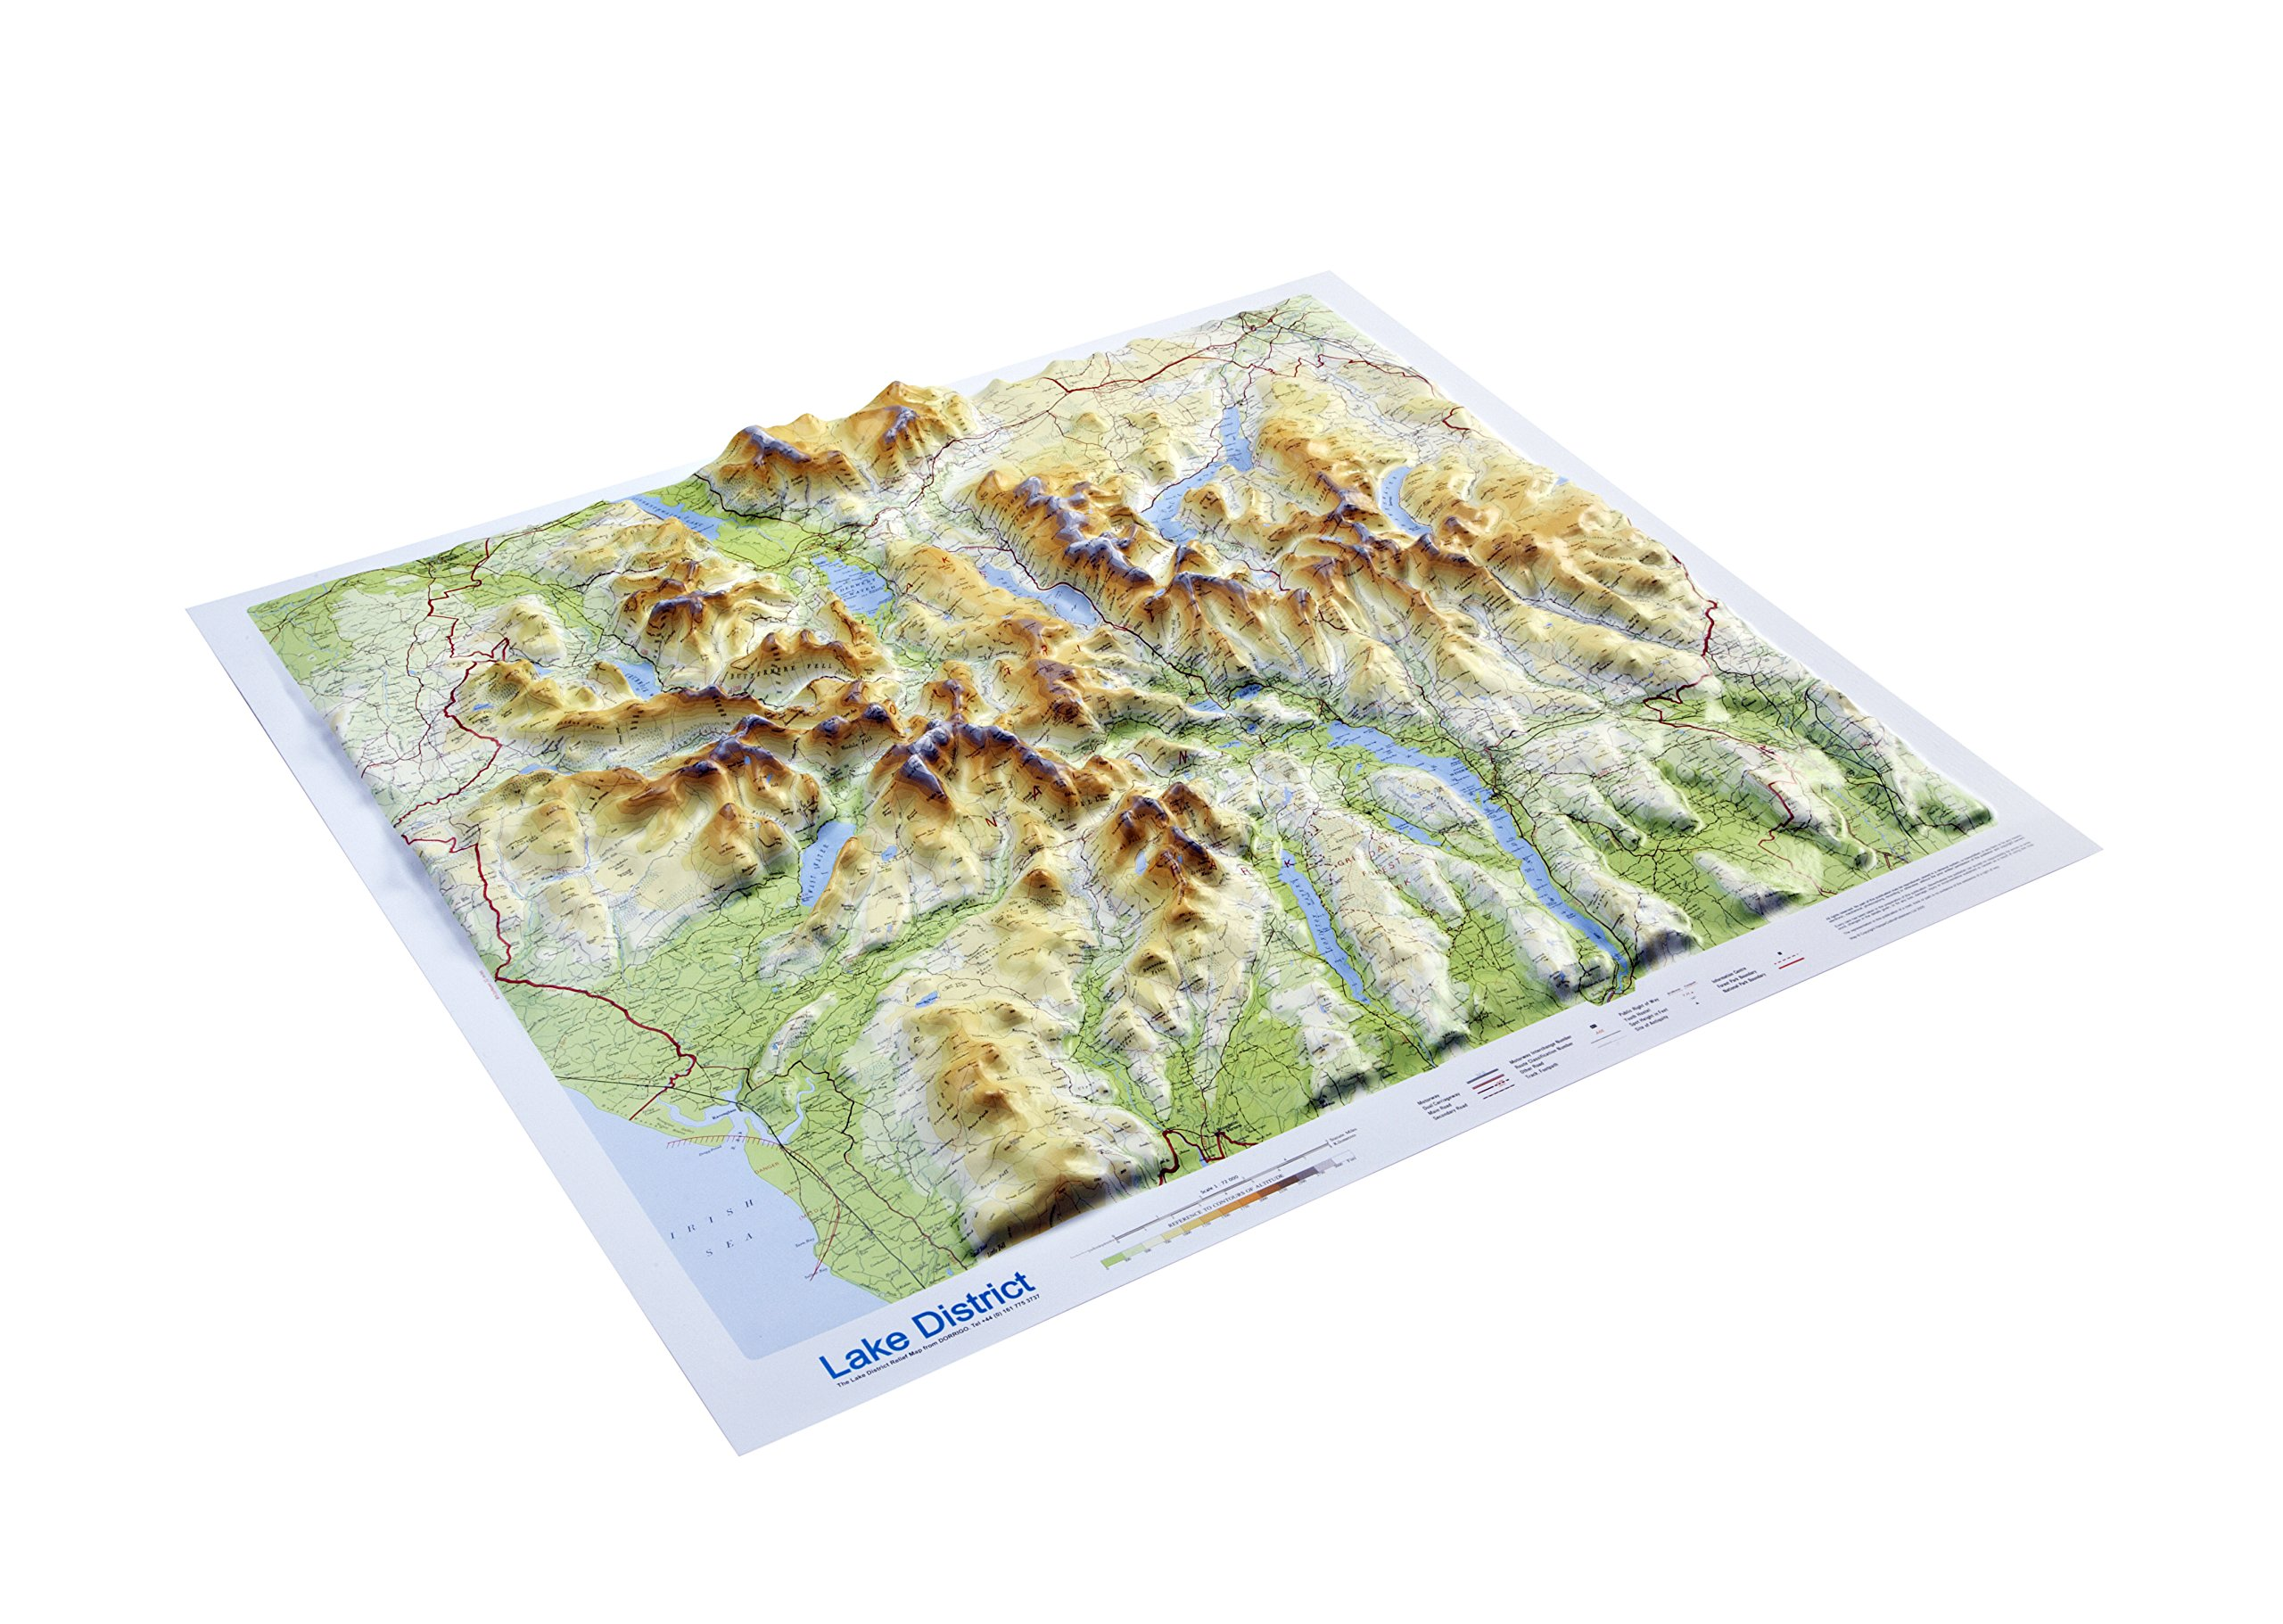 relief map of lake district Buy Lake District Raised Relief Map Unframed Raised Relief Maps Series Book Online At Low Prices In India Lake District Raised Relief Map Unframed Raised Relief Maps Series Reviews Ratings relief map of lake district